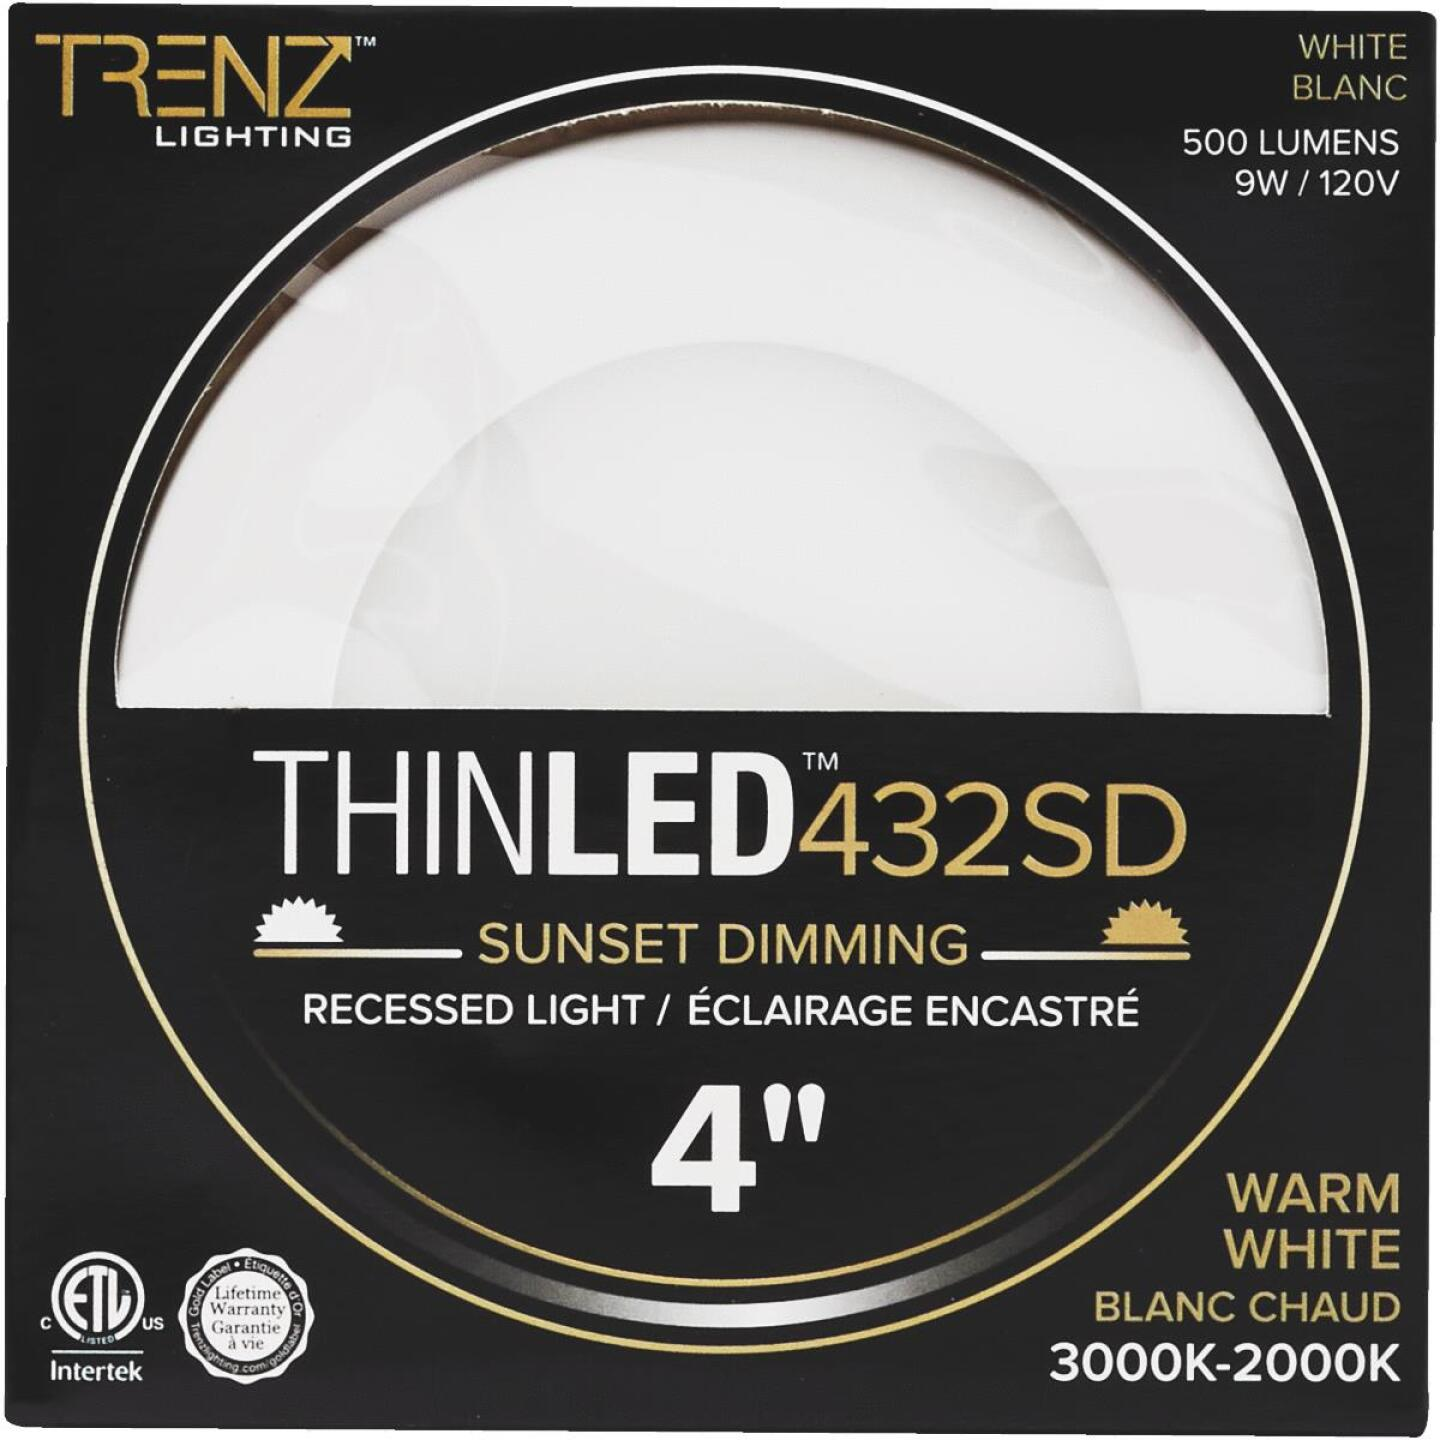 Liteline Trenz ThinLED 4 In. New Construction/Remodel IC White 500 Lm. Sunset Dimming Recessed Light Kit Image 2